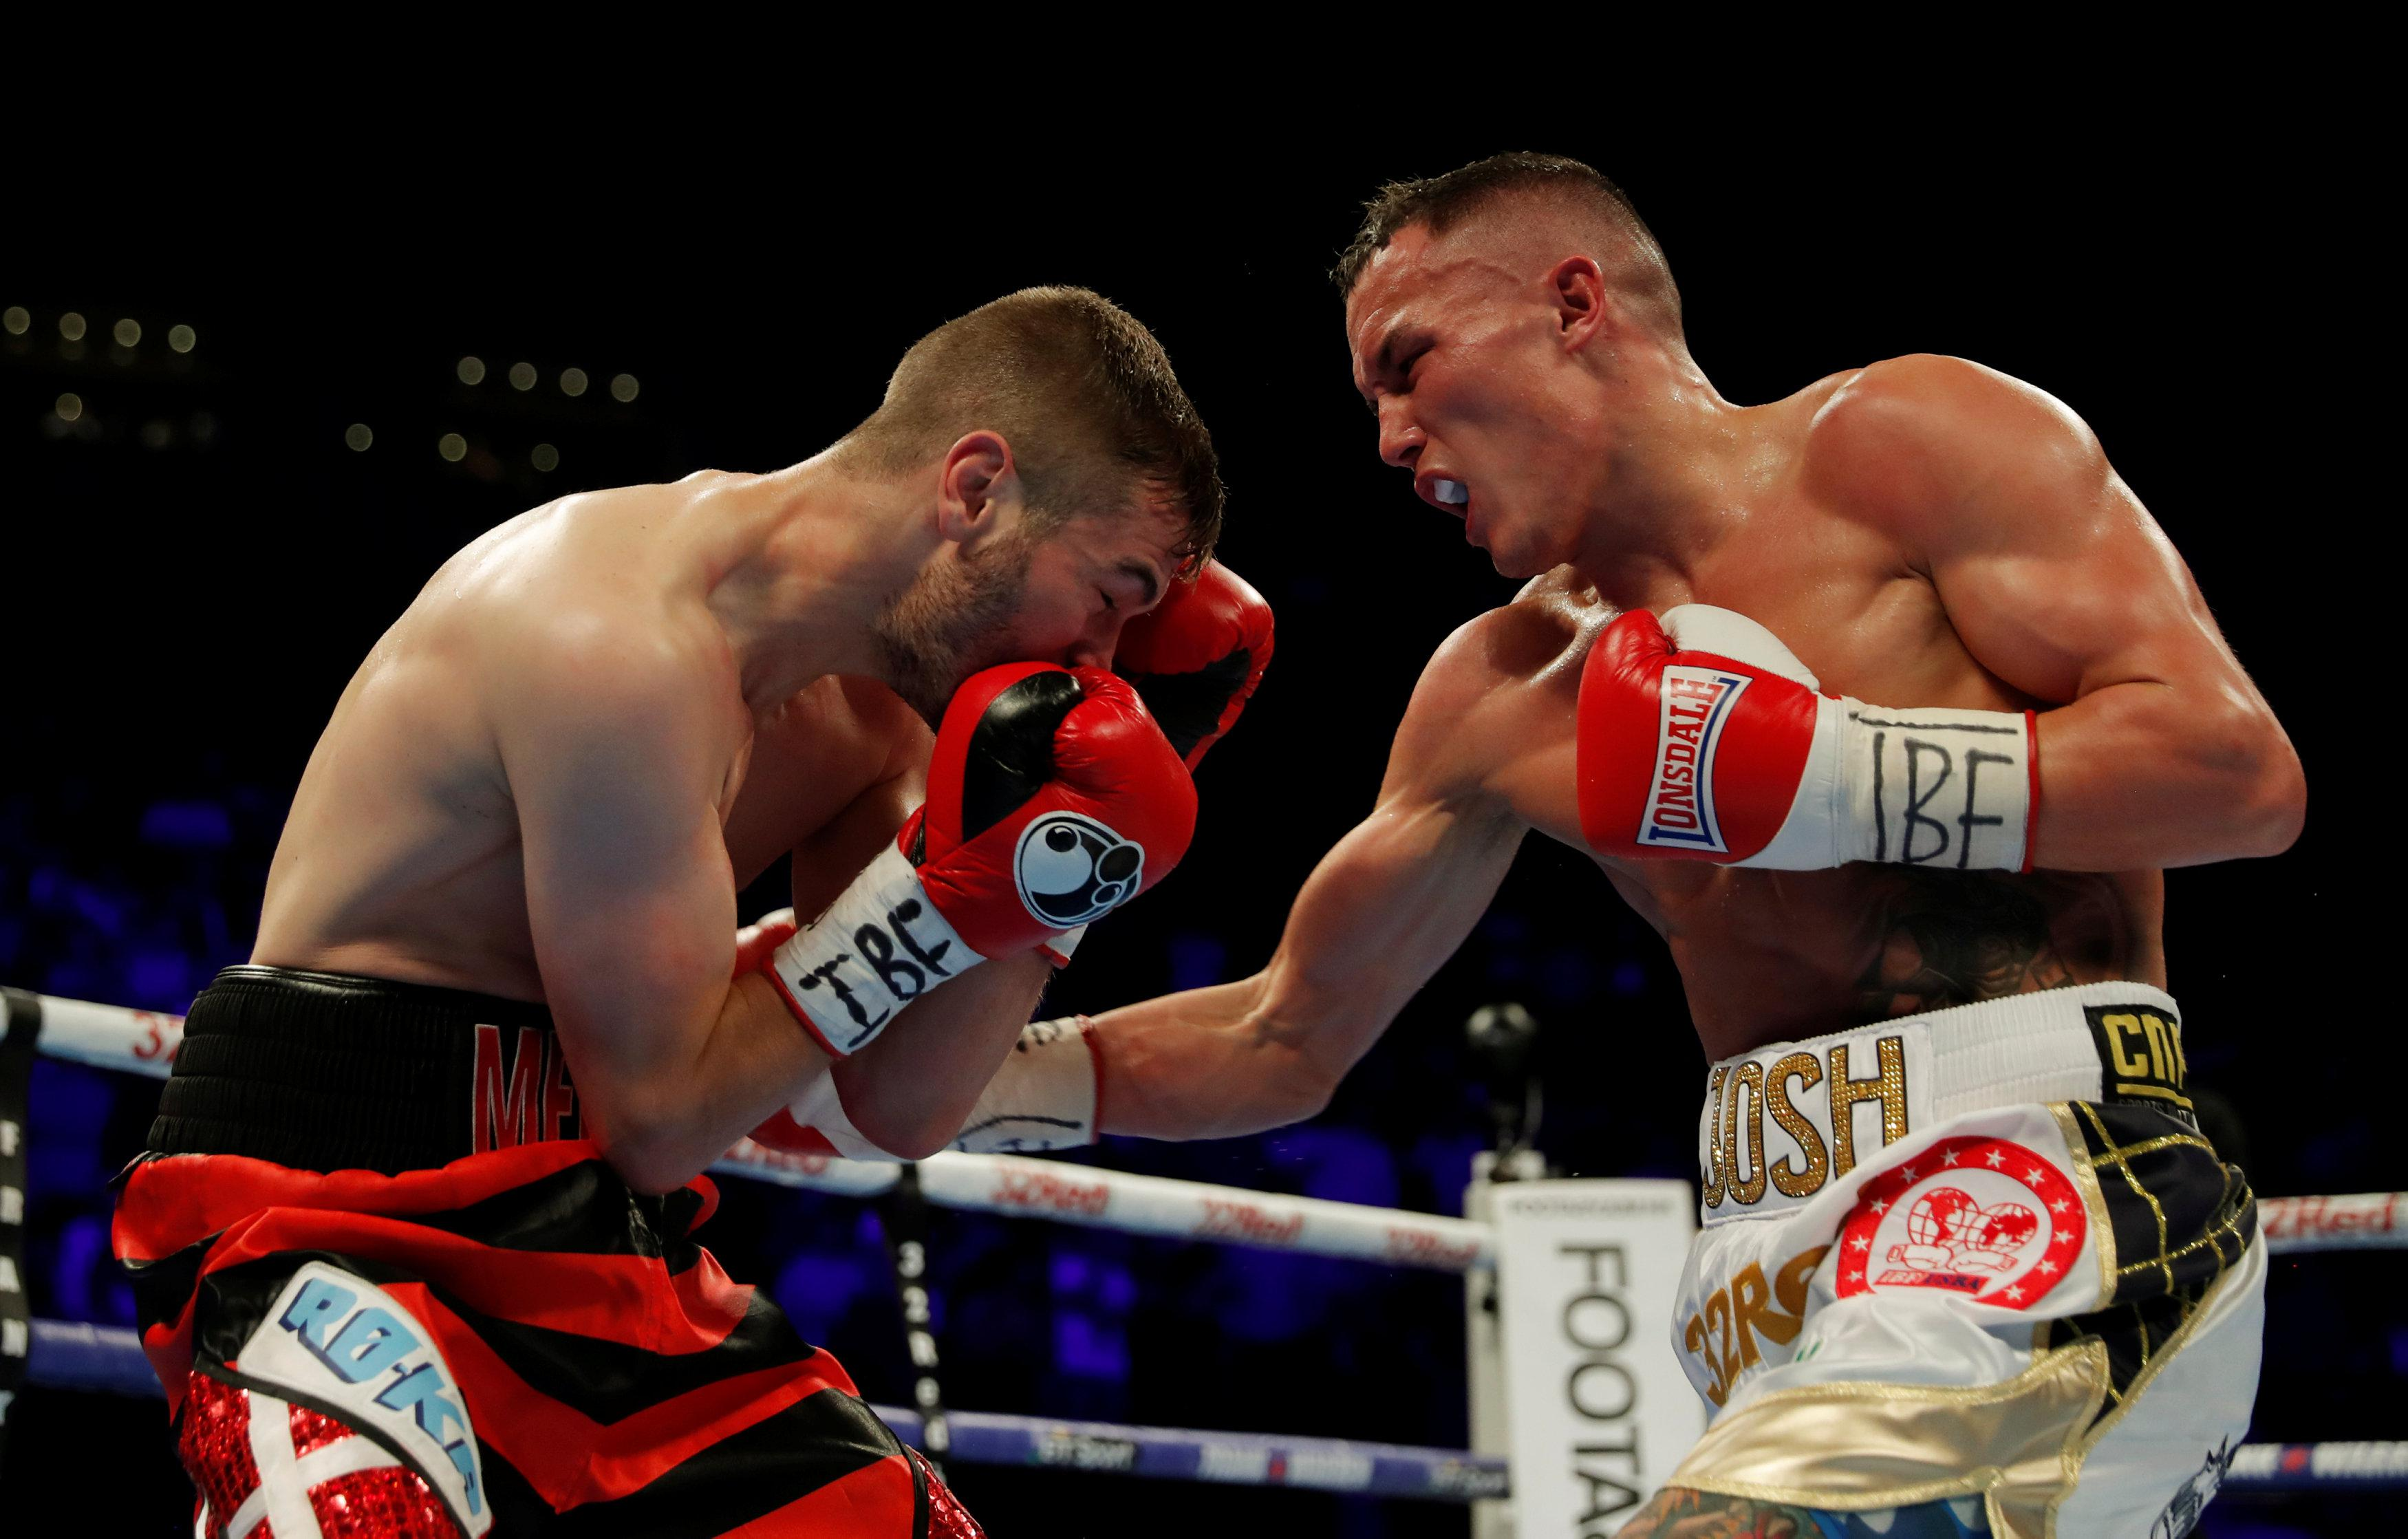 Josh Warrington will be putting his undefeated record on the line against Lee Selby